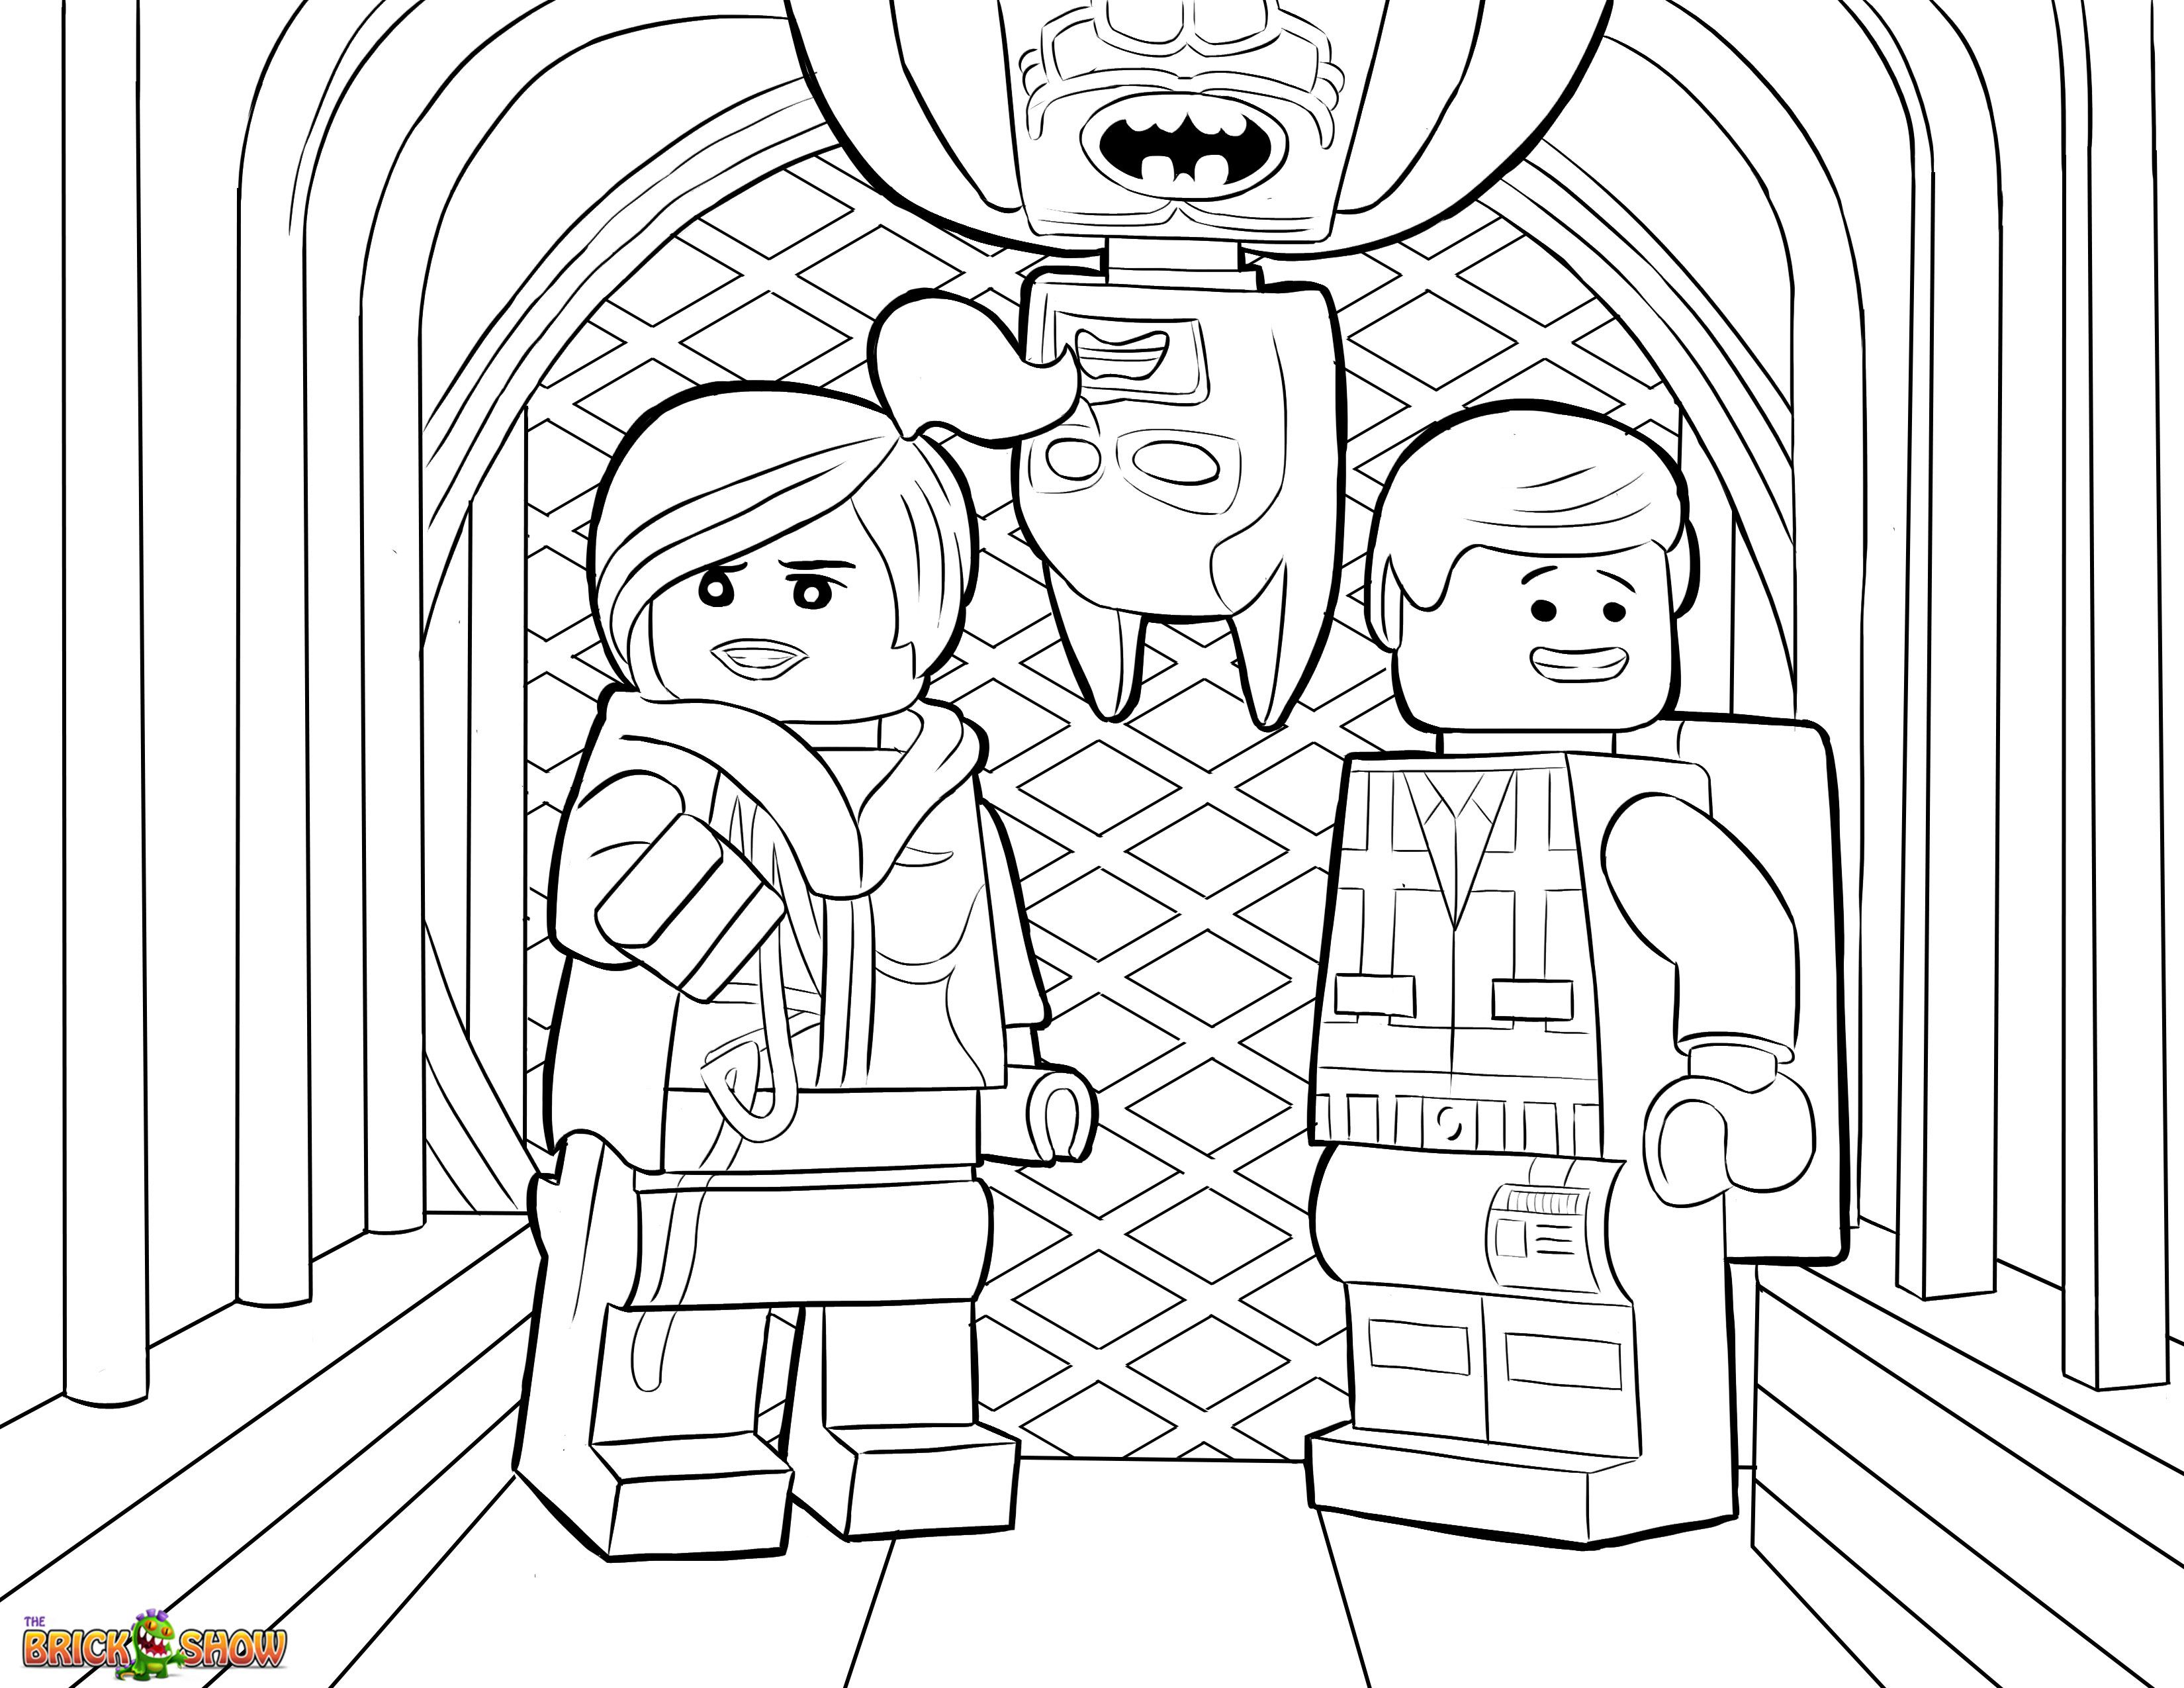 330 Superhero Coloring Pages Ideas